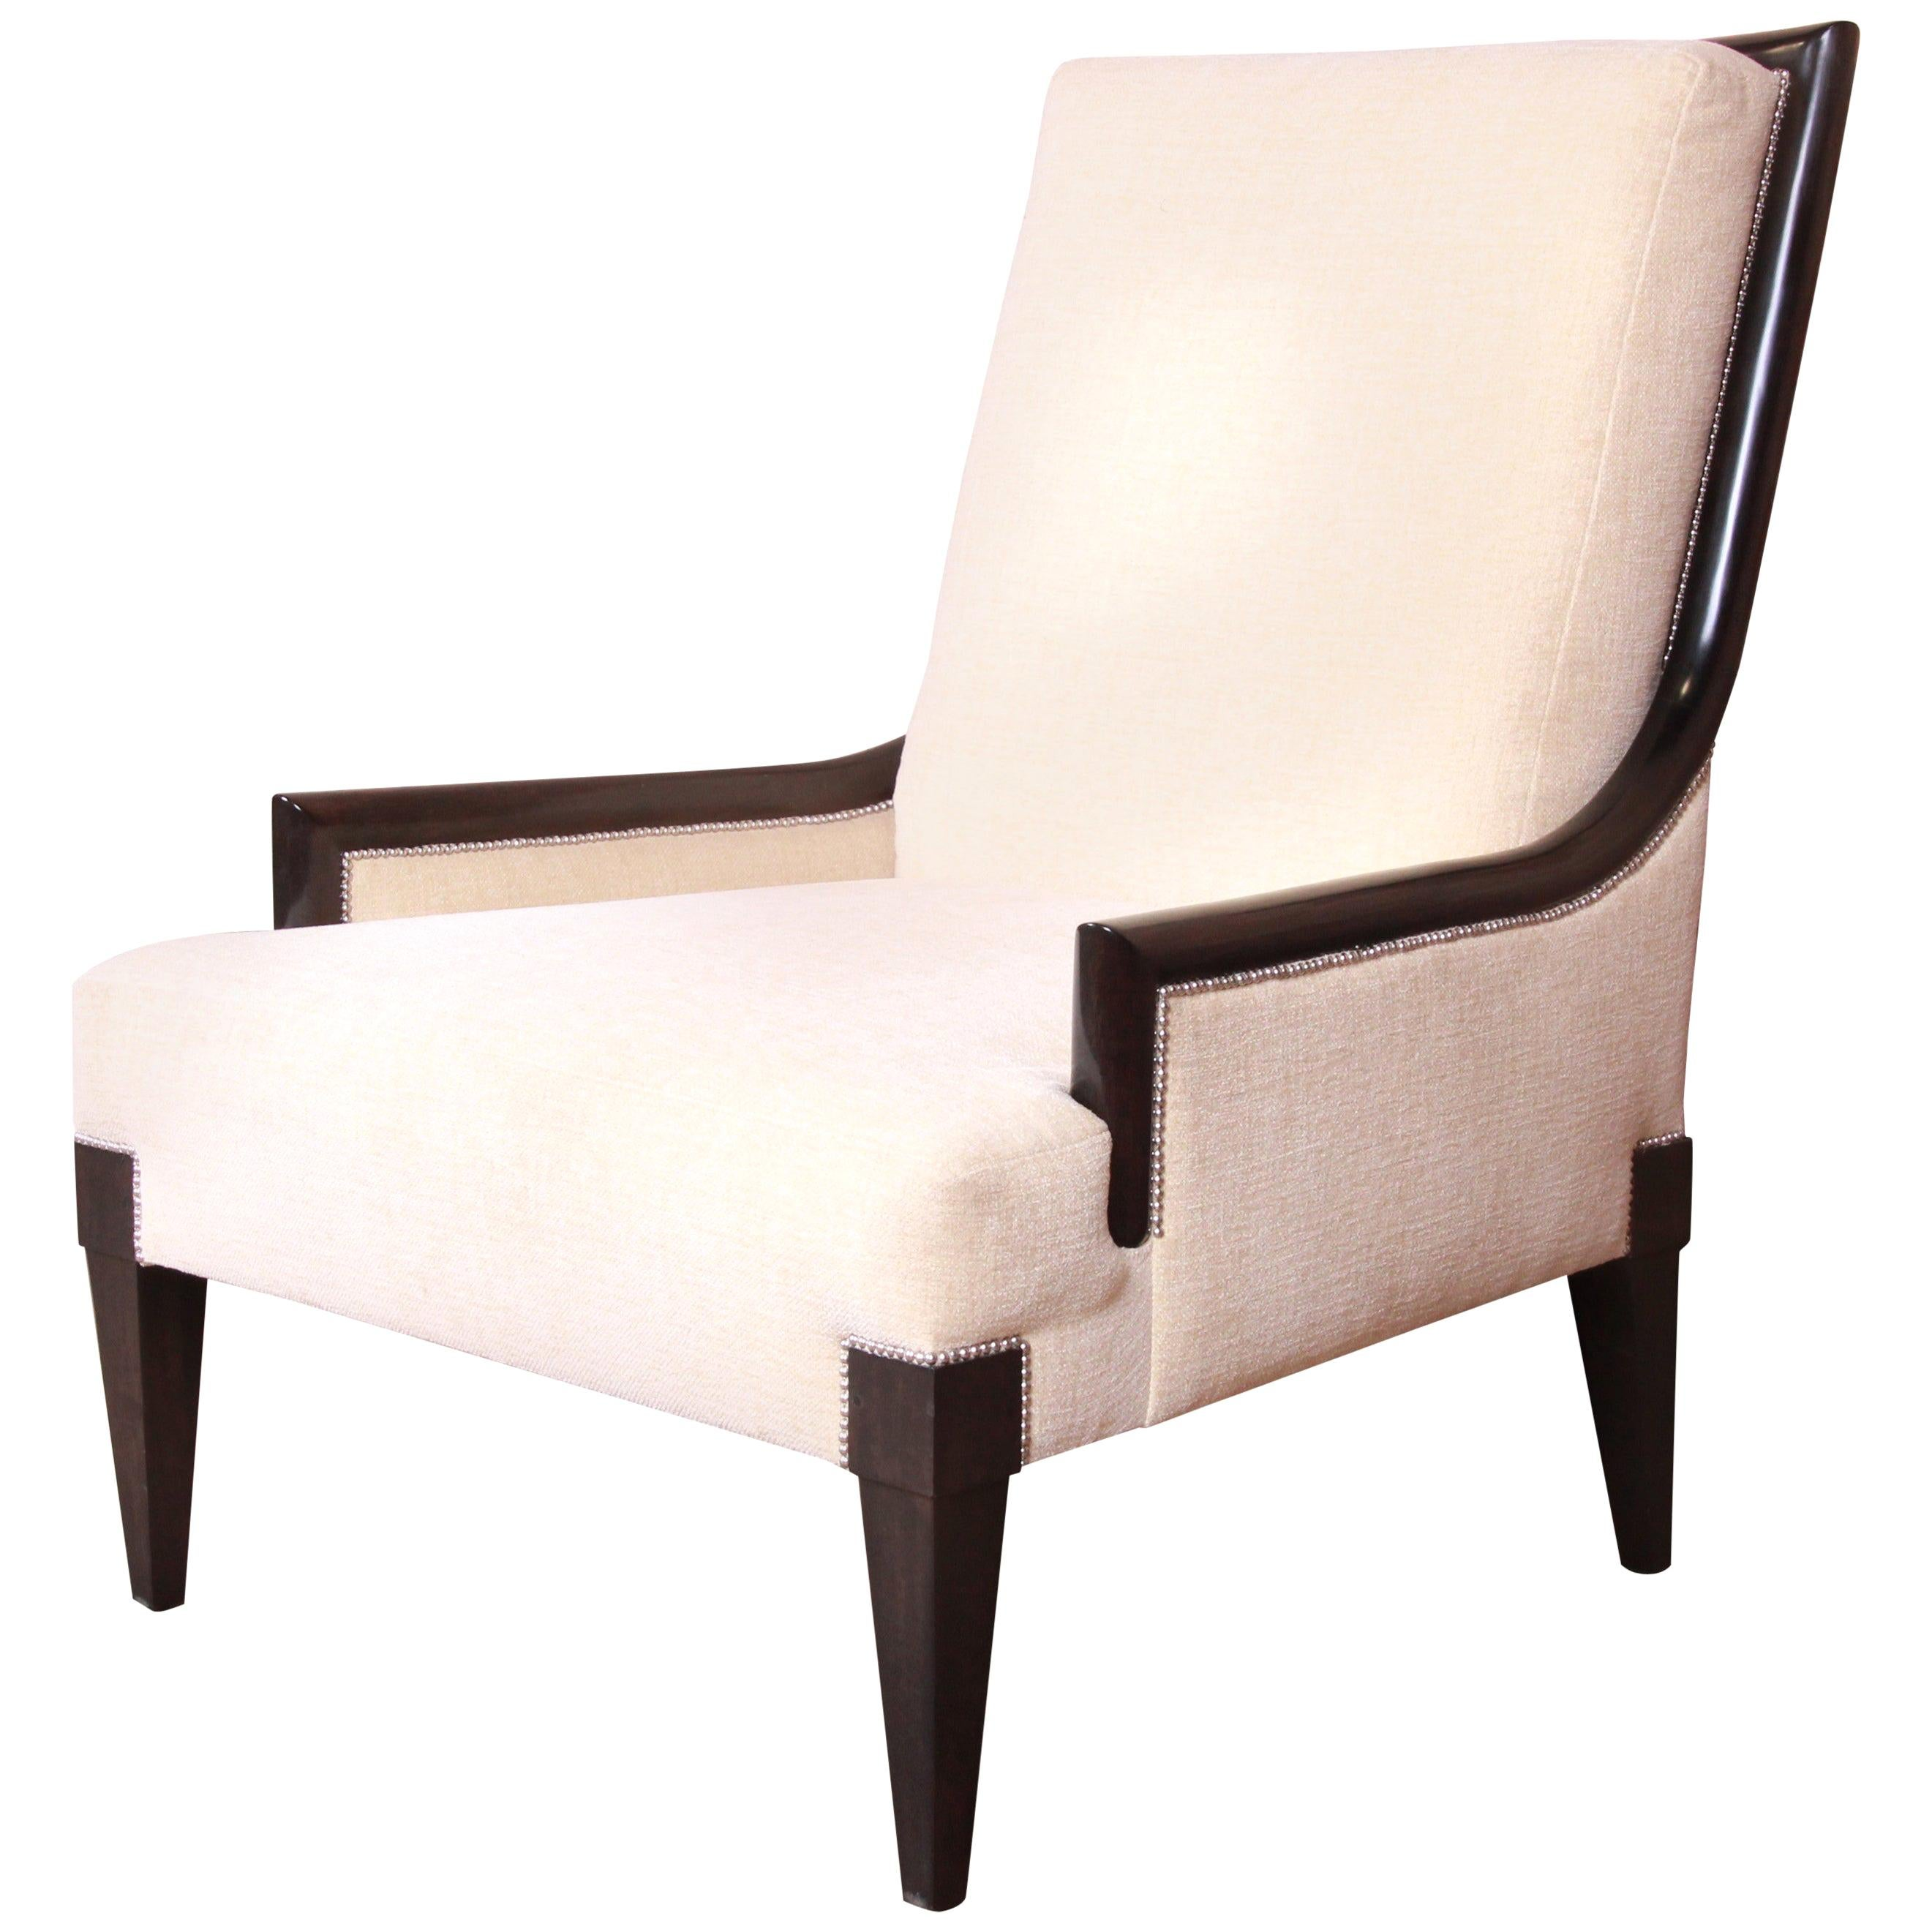 Barbara Barry Style Modern Mahogany Upholstered Lounge Chair by William Switzer